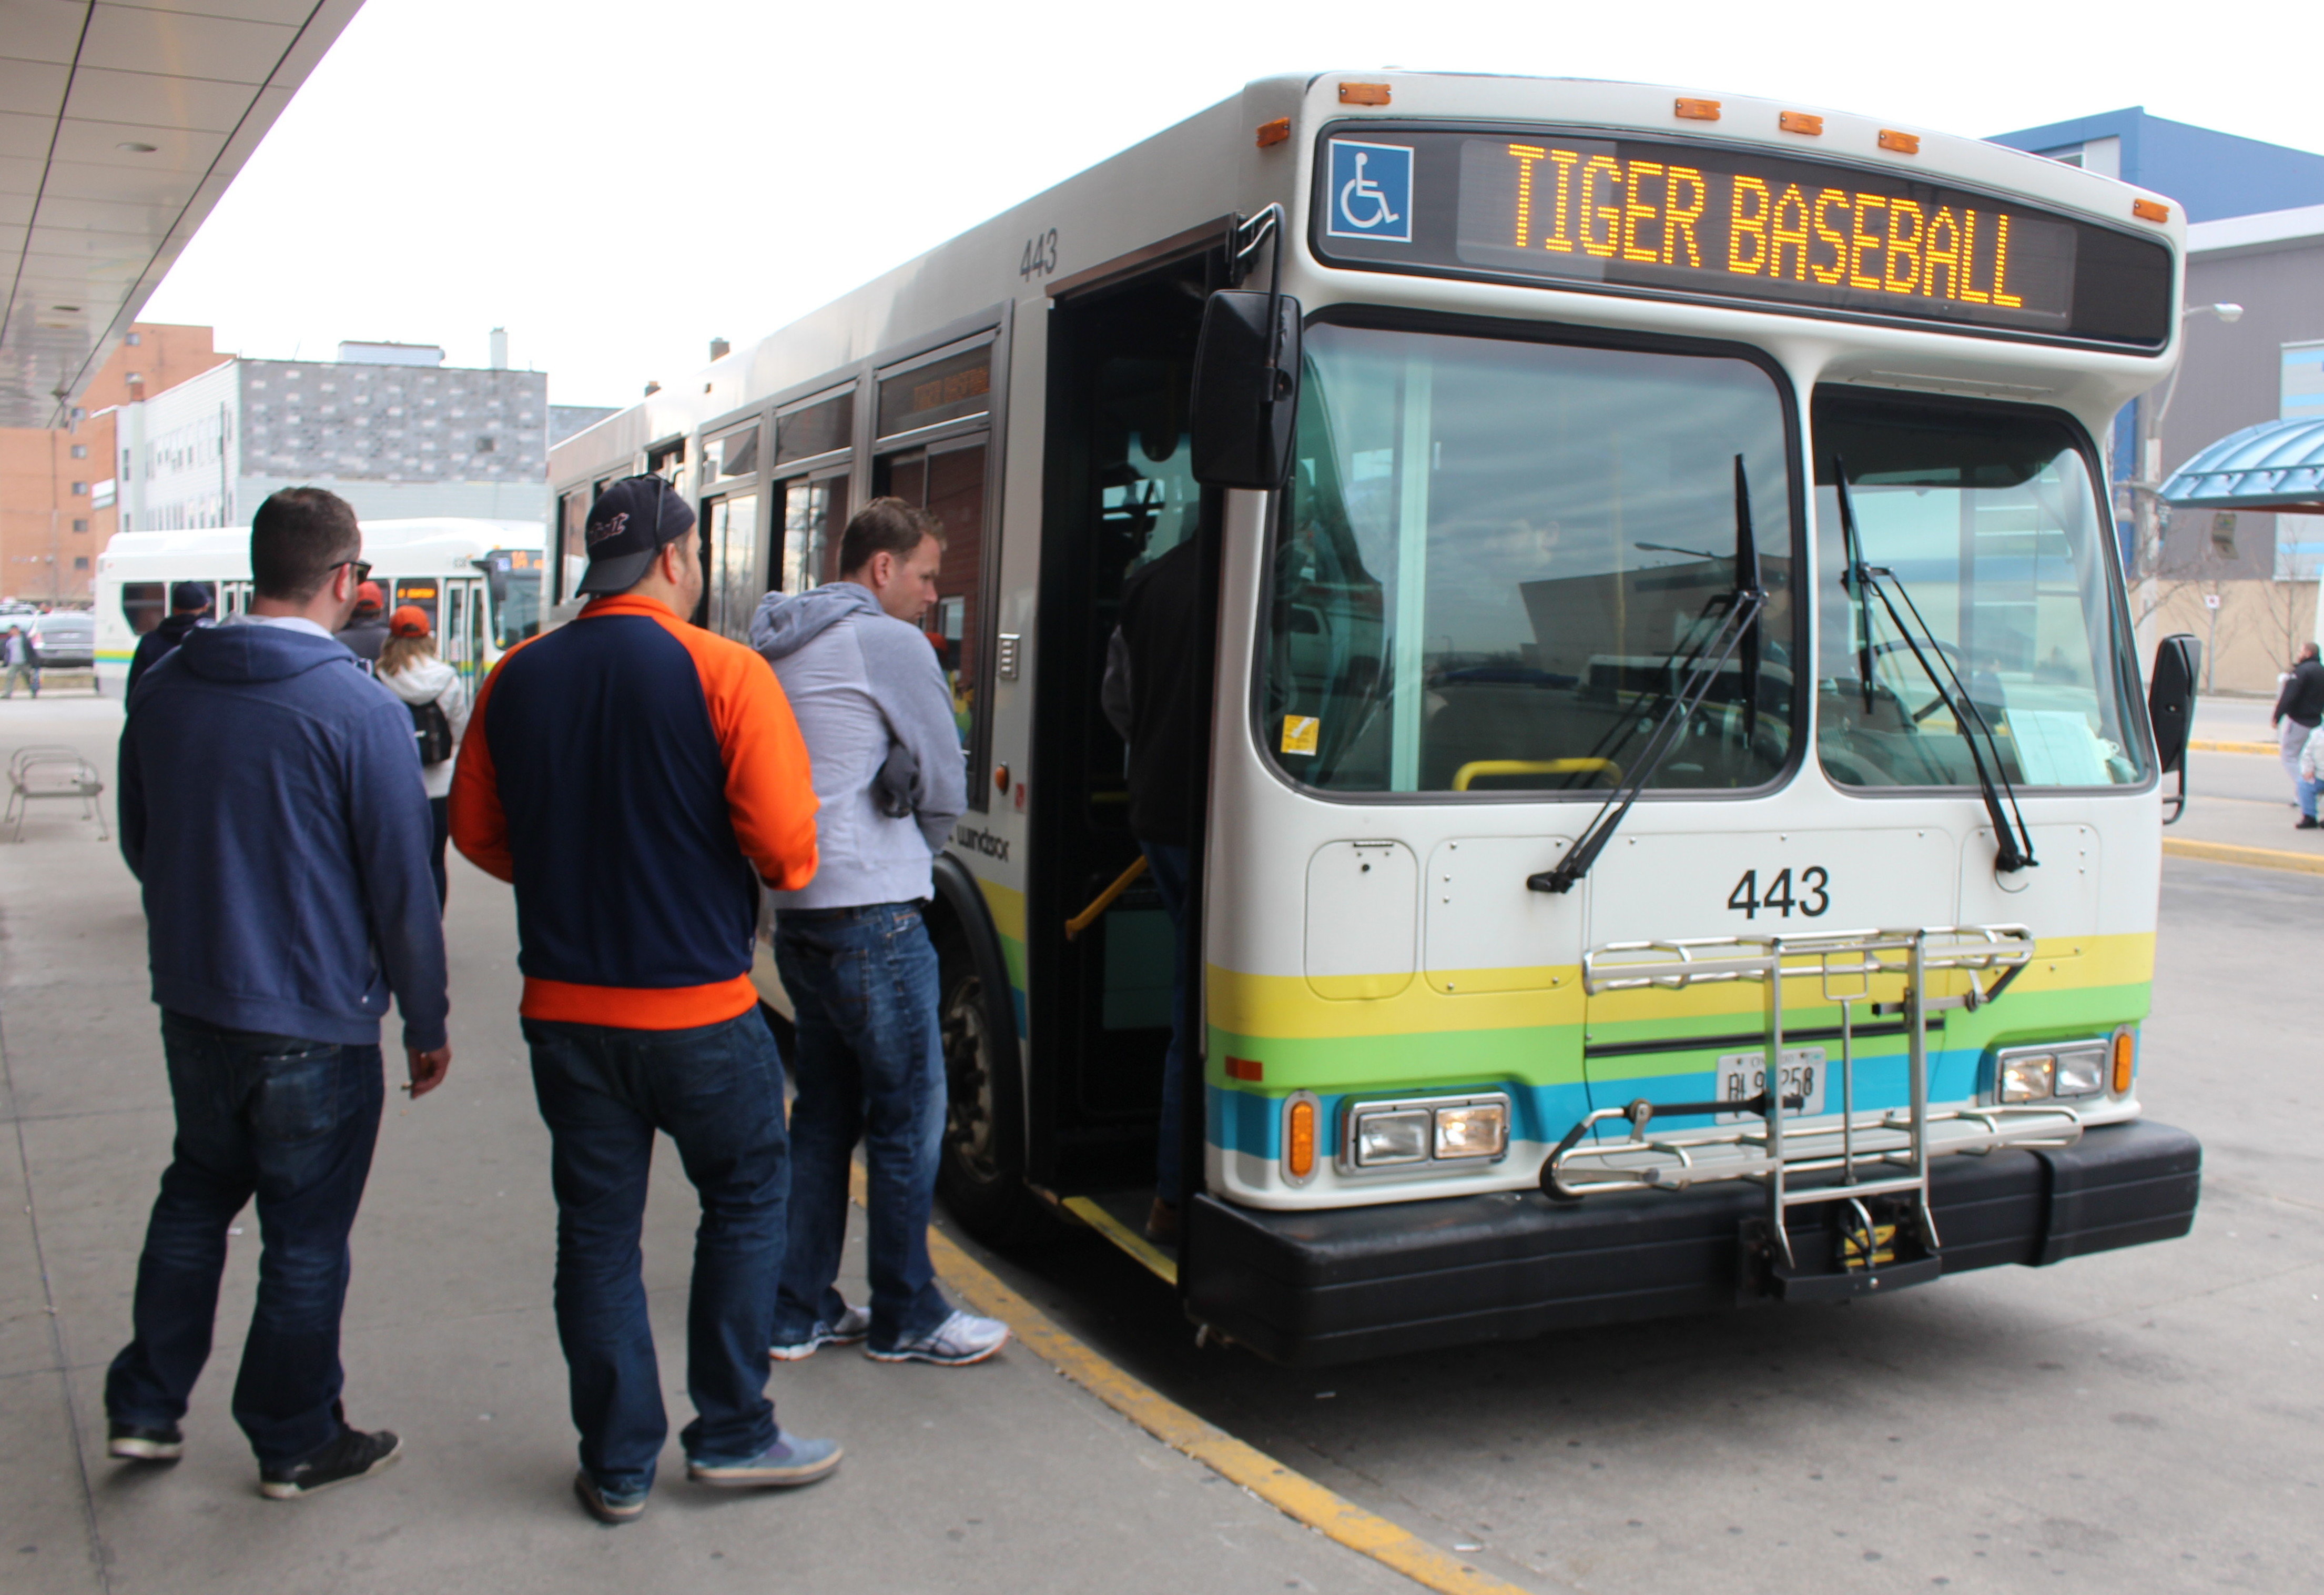 Detroit Tigers baseball fans board the Transit Windsor Tunnel Bus on Opening Day 2015, April 6, 2015. (Photo by Mike Vlasveld)